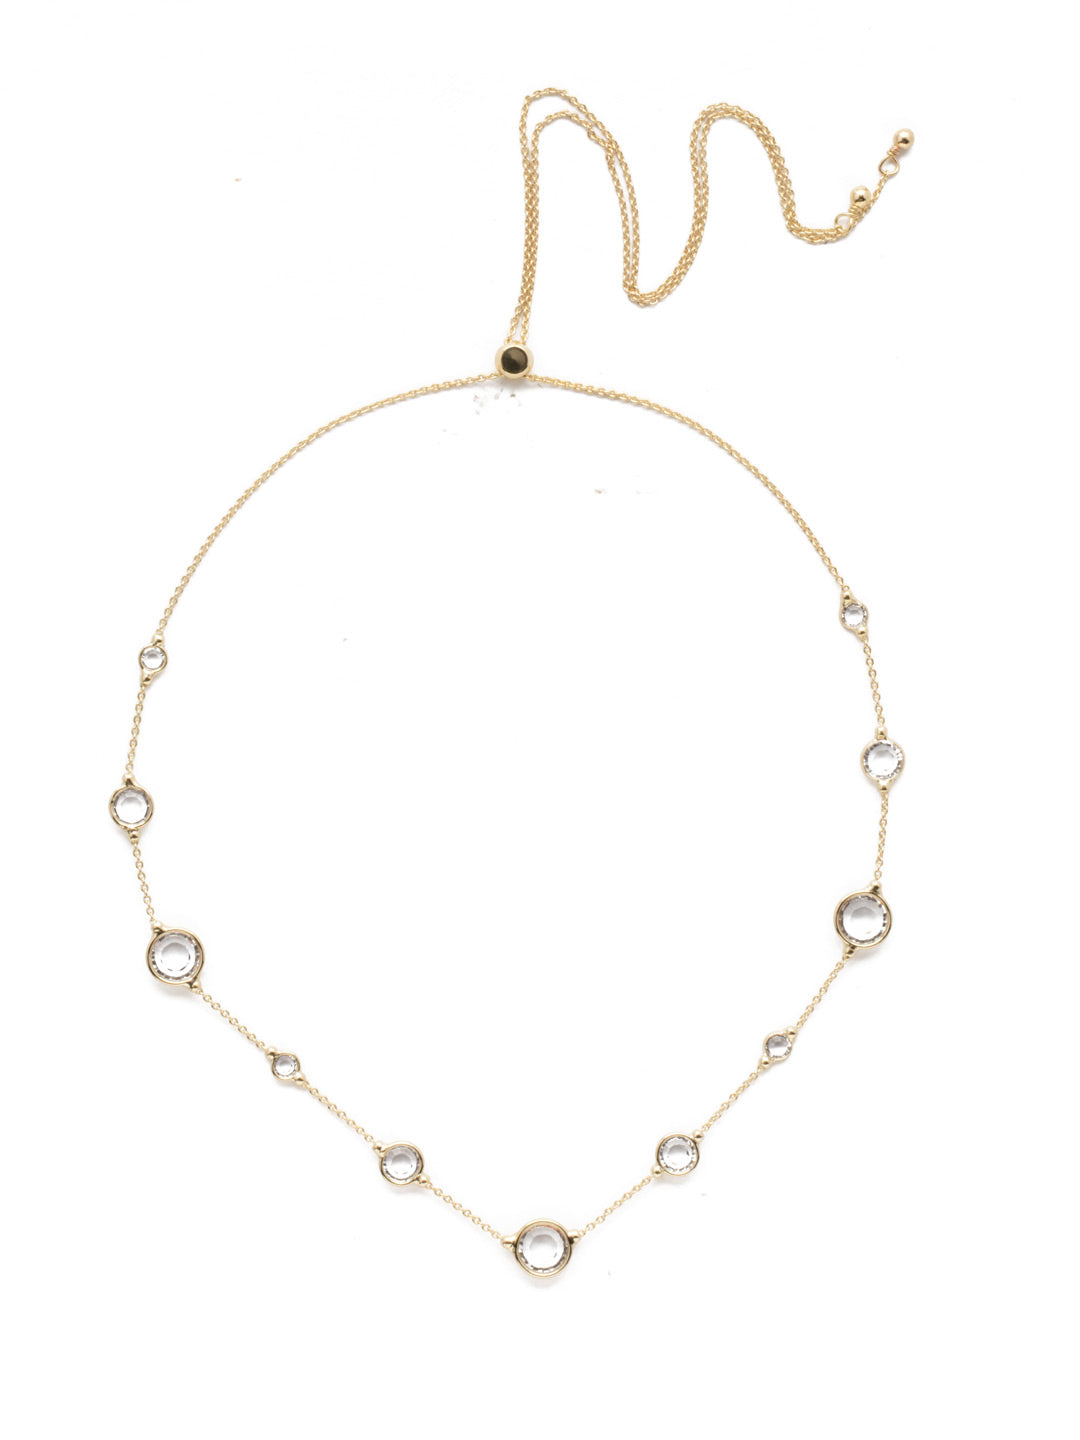 Inner Orbit Crystal Tennis Necklace - 4NEK34BGCRY